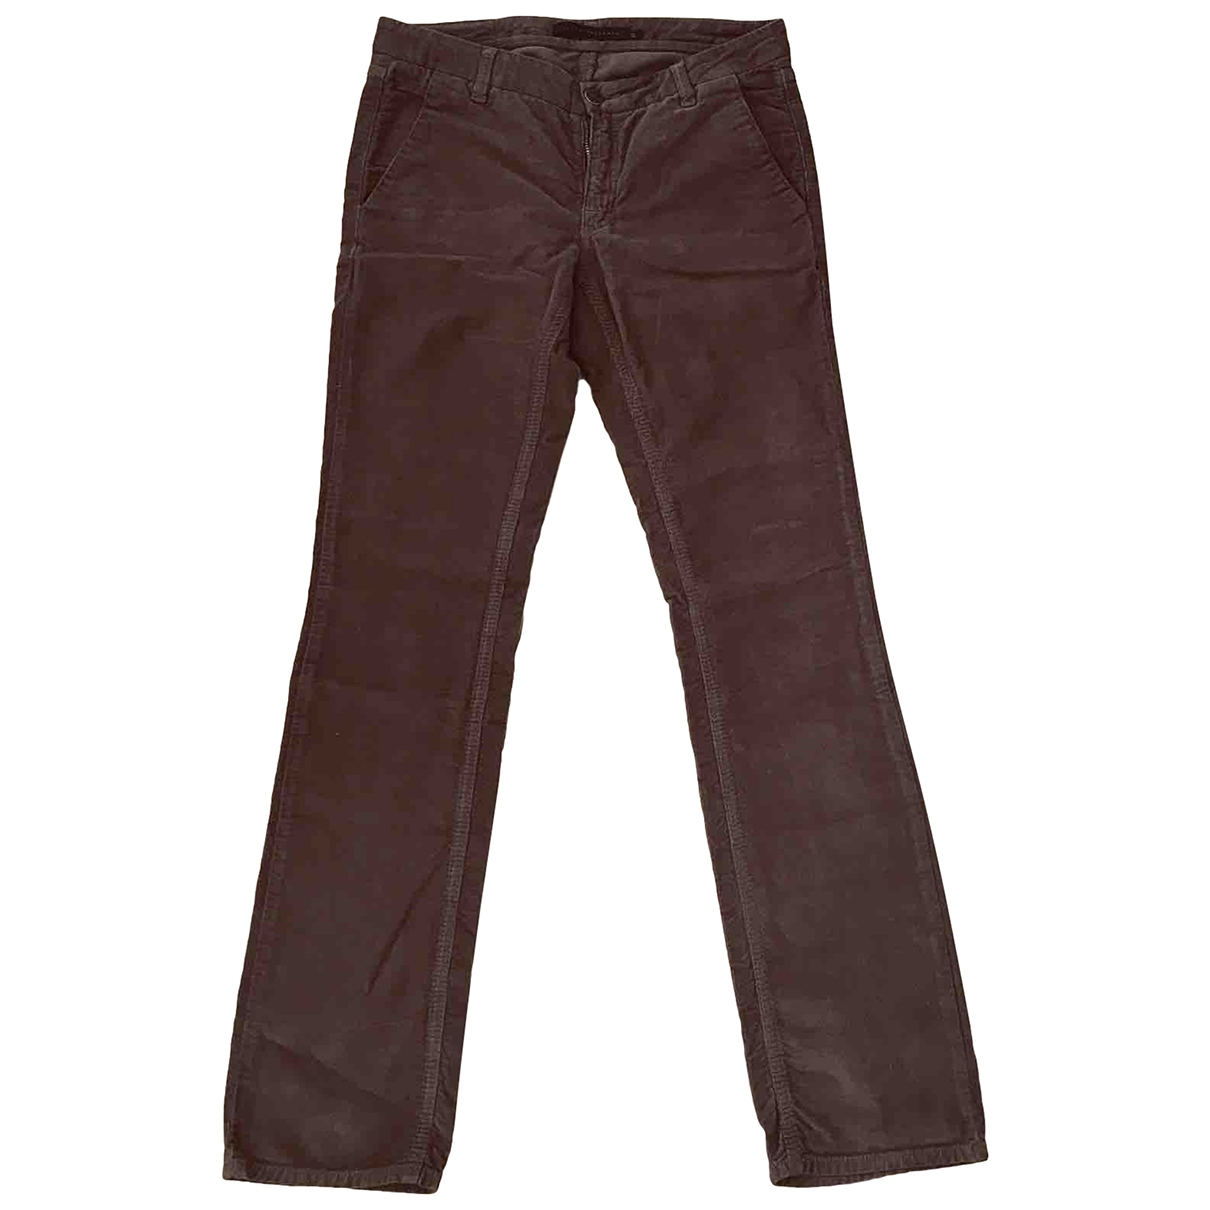 Victoria Beckham \N Brown Cotton Trousers for Women S International